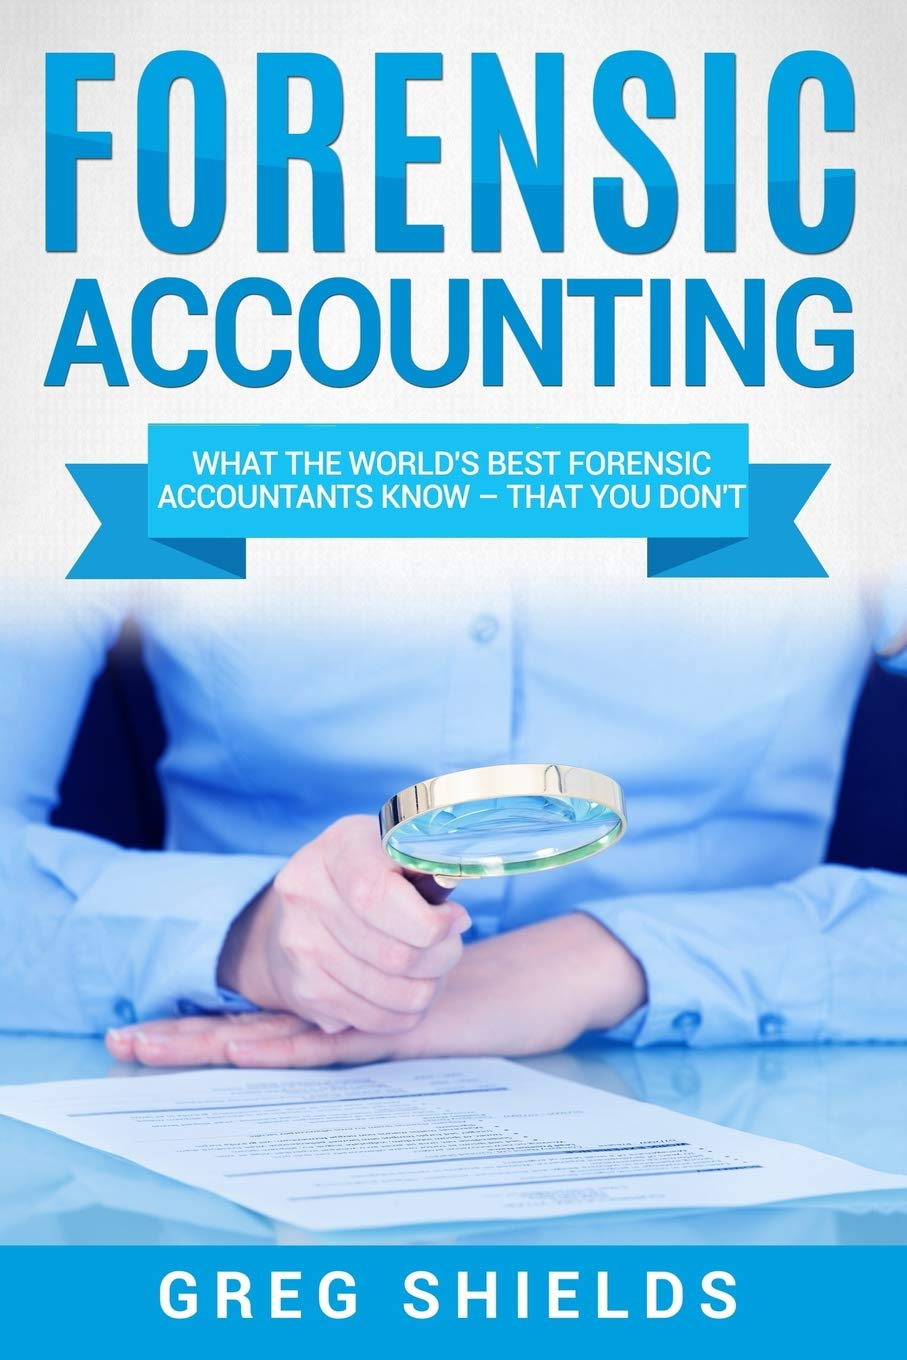 Forensic Accounting  What The World's Best Forensic Accountants Know – That You Don't